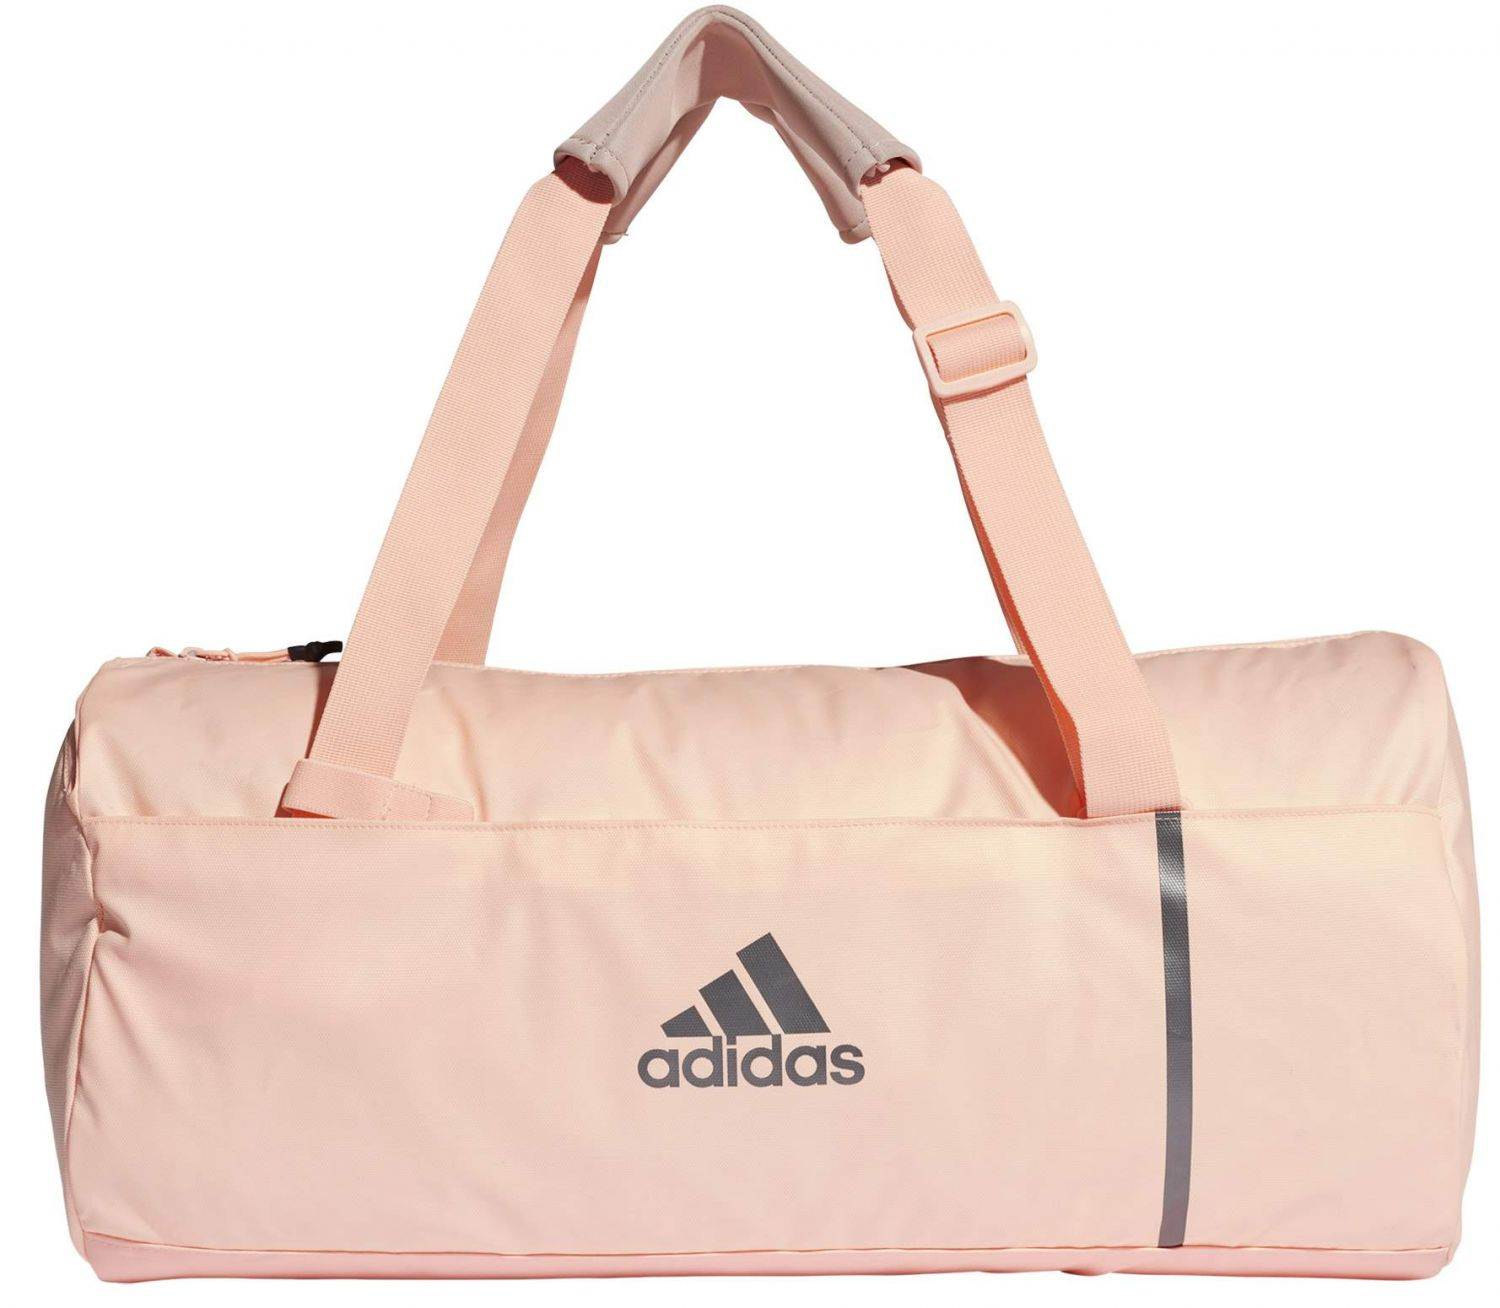 adidas-convertible-duffelbag-m-tasche-farbe-clear-orange-night-metallic-night-metallic-